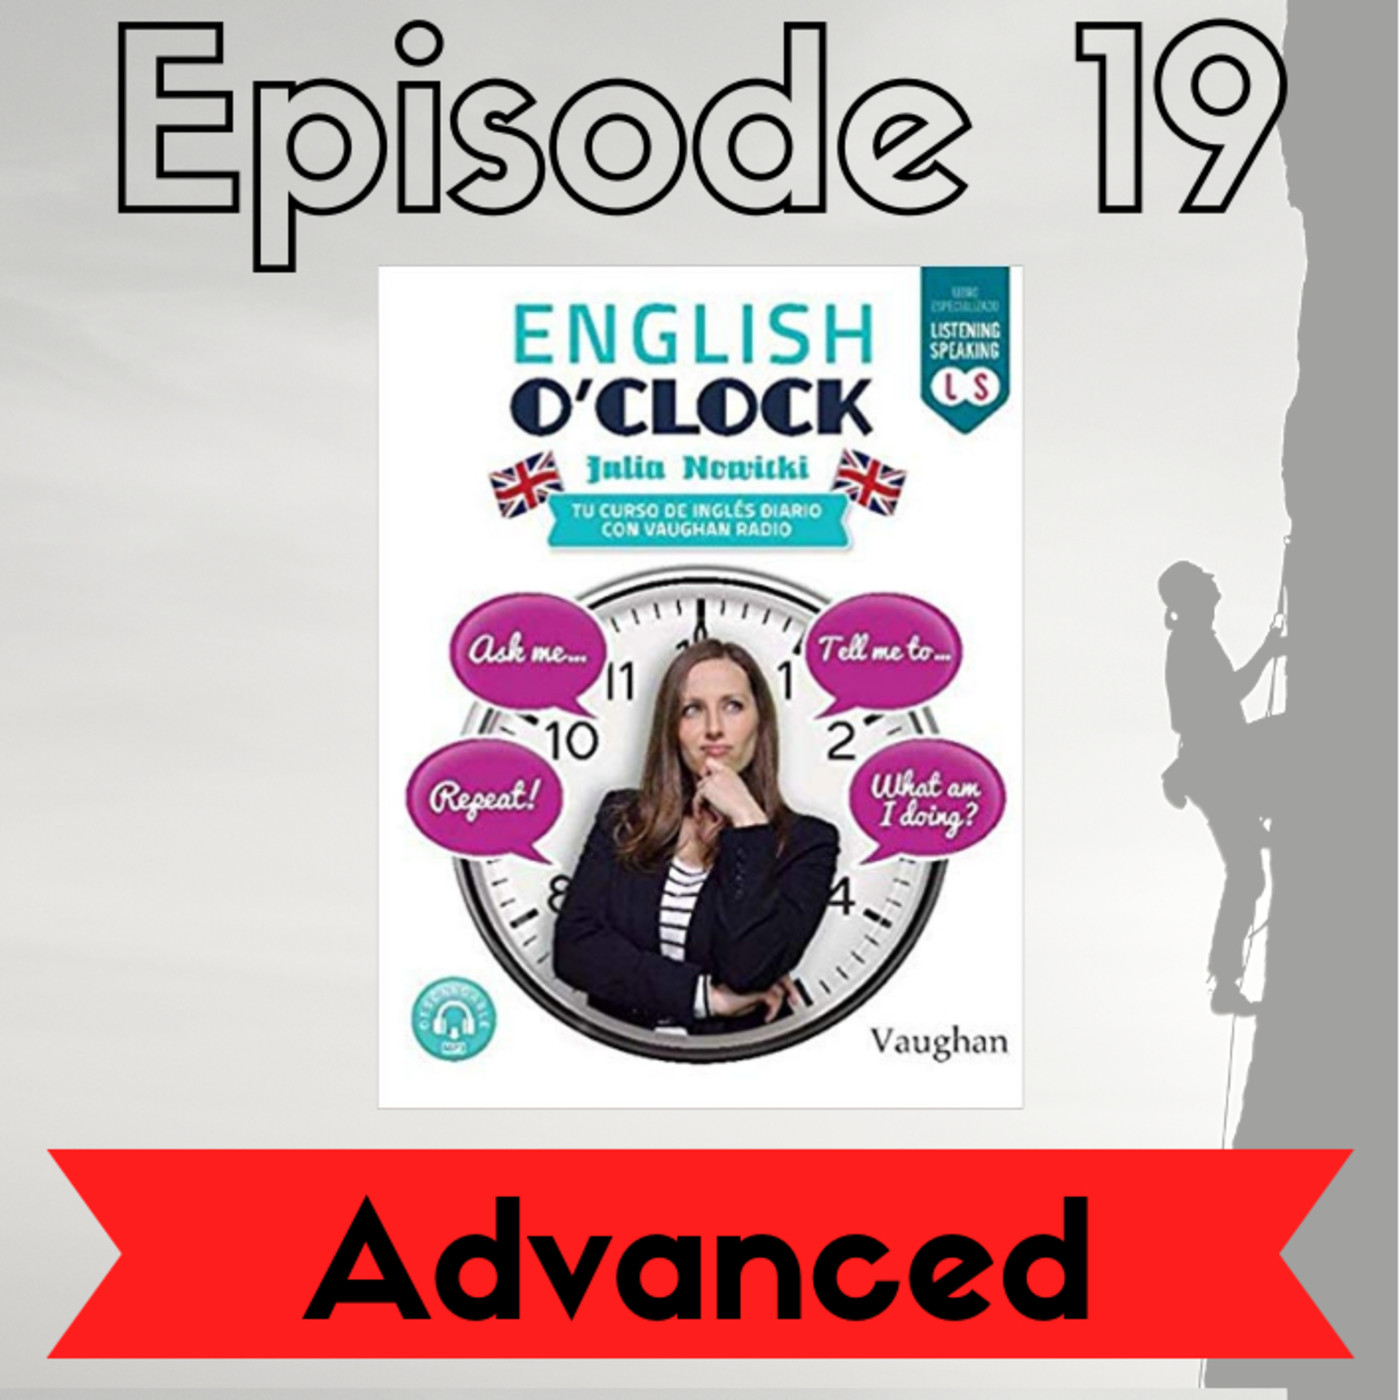 English o'clock 2.0 - Advanced Episode 19 (14.10.2020)